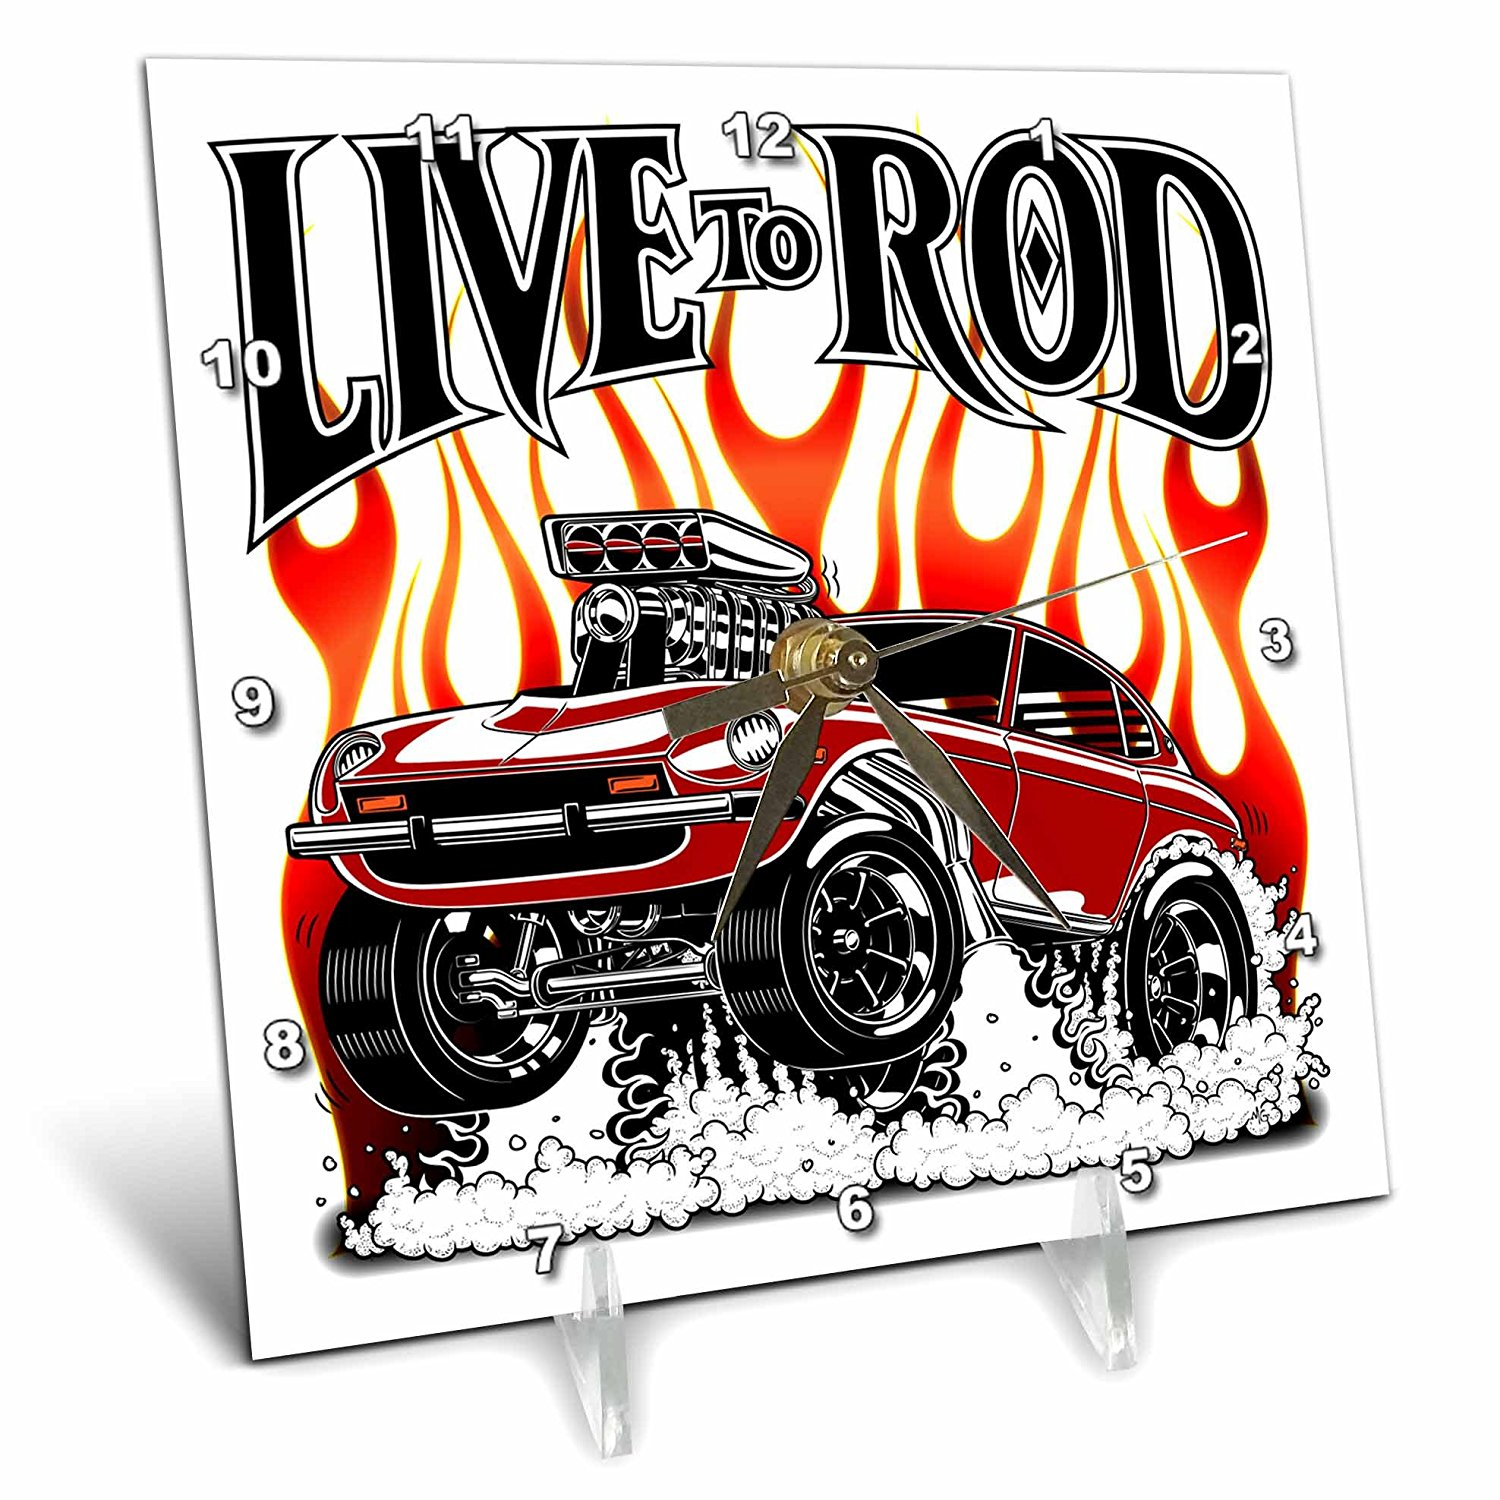 Cheap Hot Rod Flames, find Hot Rod Flames deals on line at Alibaba.com